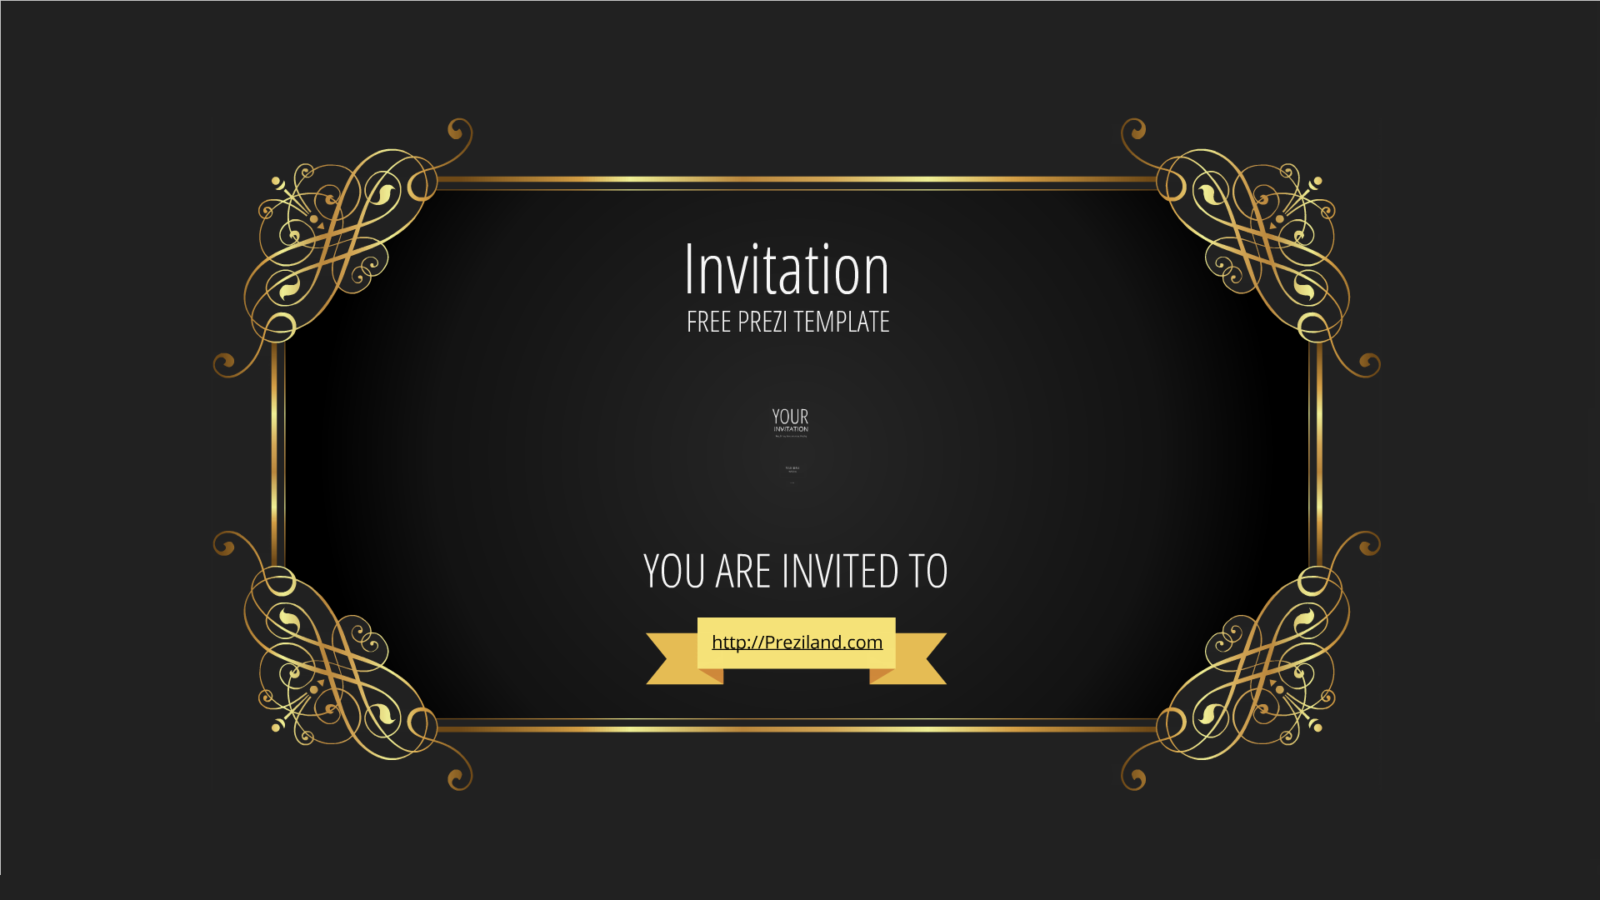 free prezi template invitation preziland